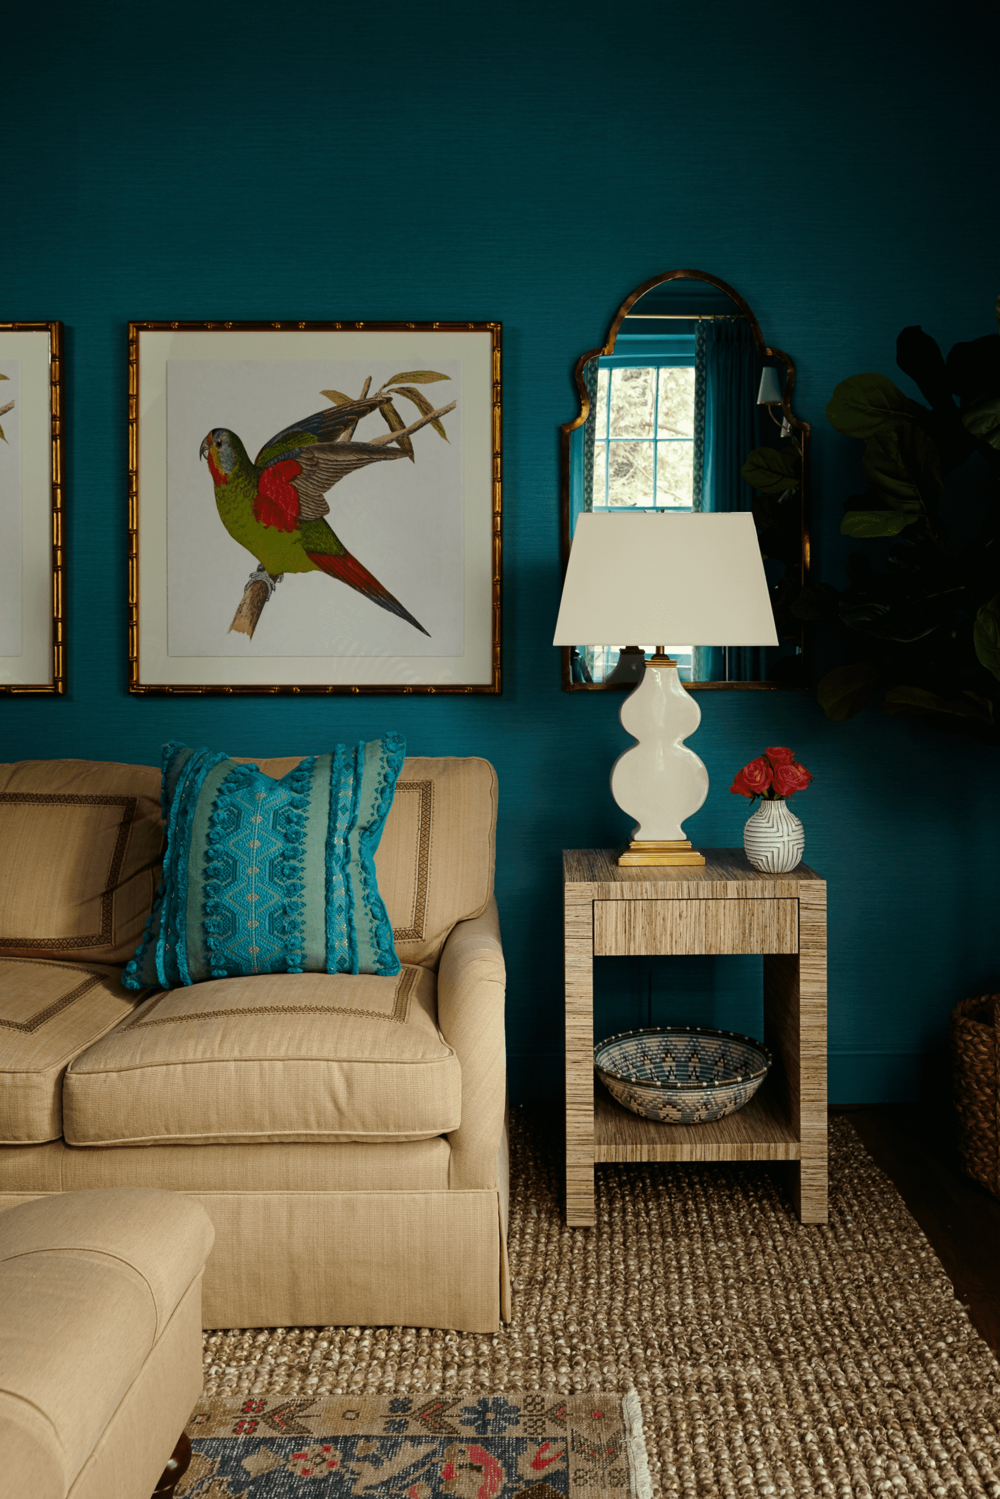 Living room with sofa and a picture of a bird